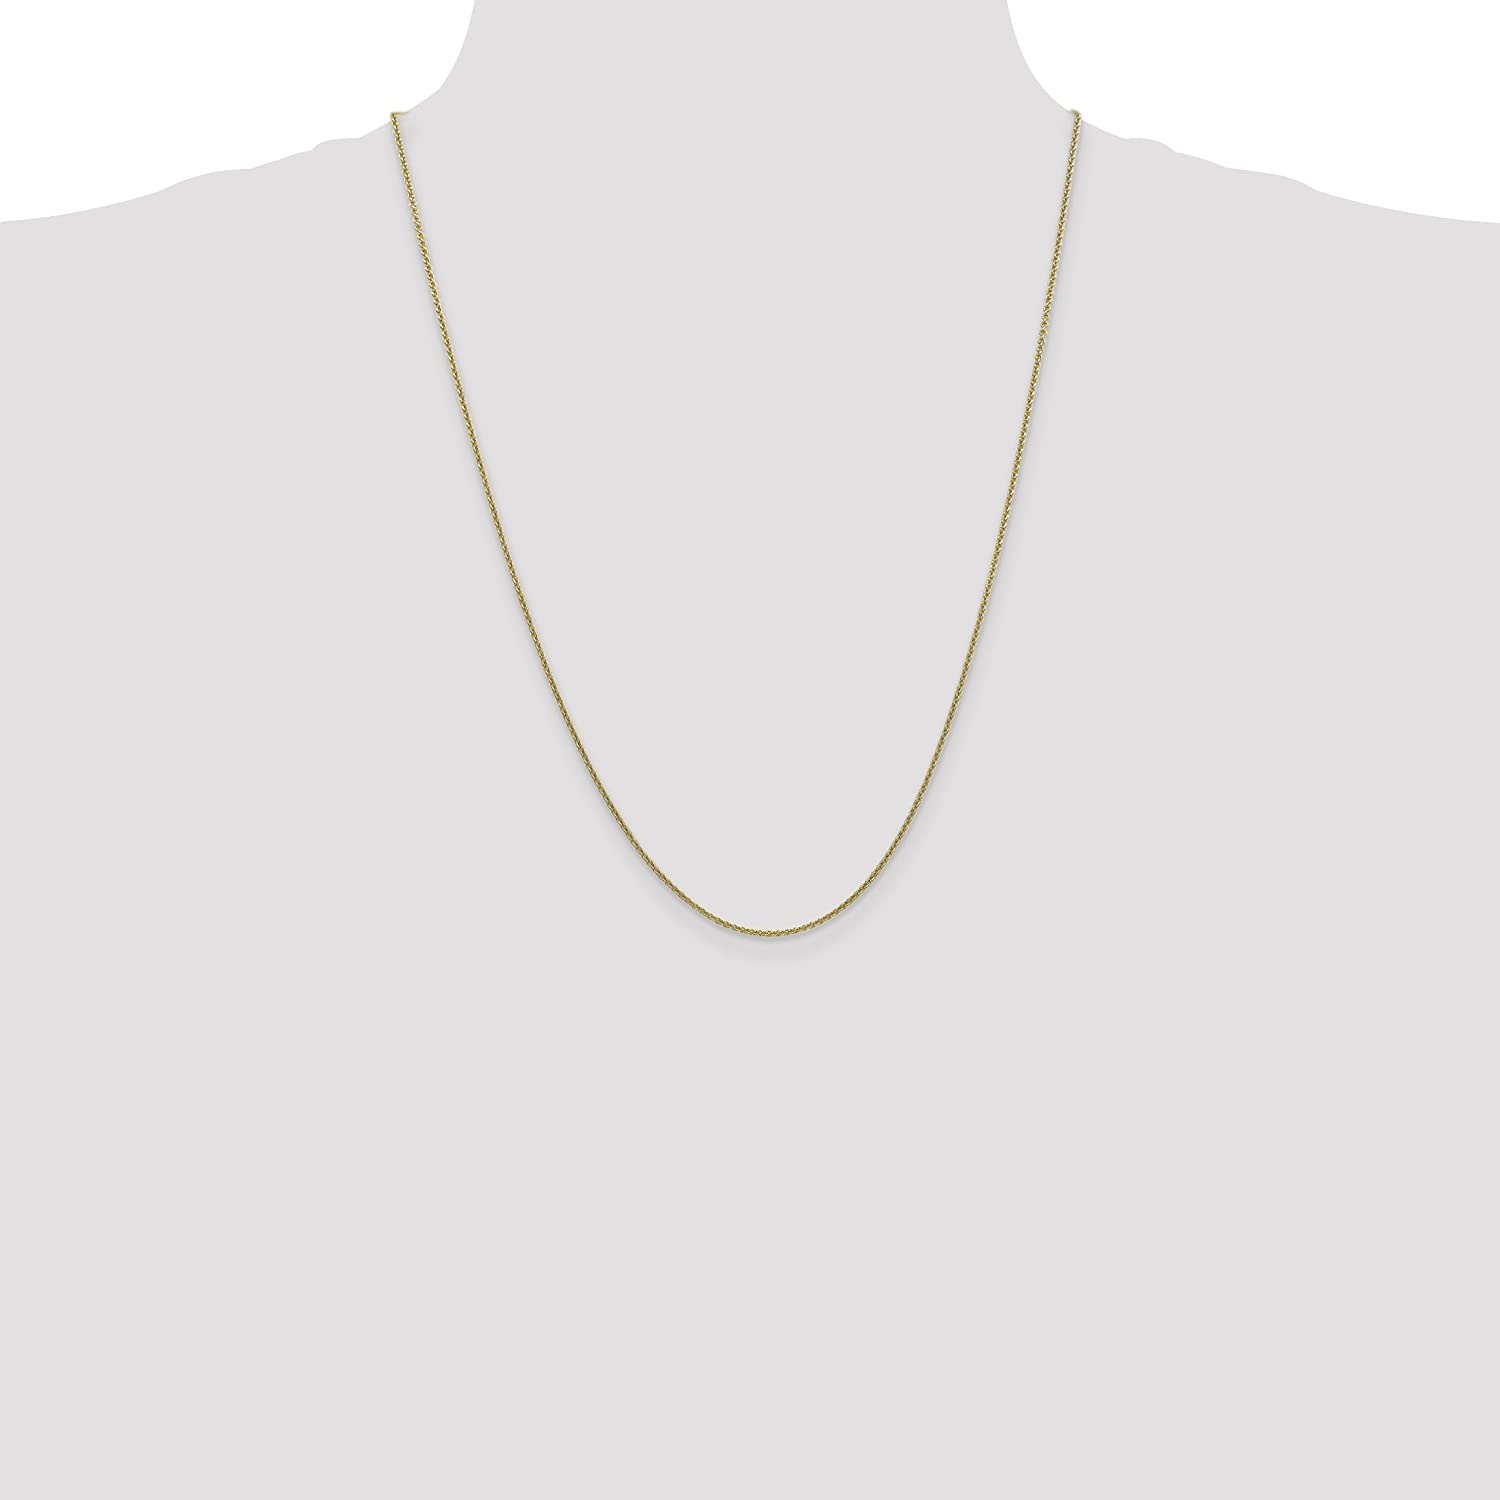 10k Yellow Gold 1.5mm Cable Chain 9 inch 30 inch Fine Jewelry Ideal Gifts For Women